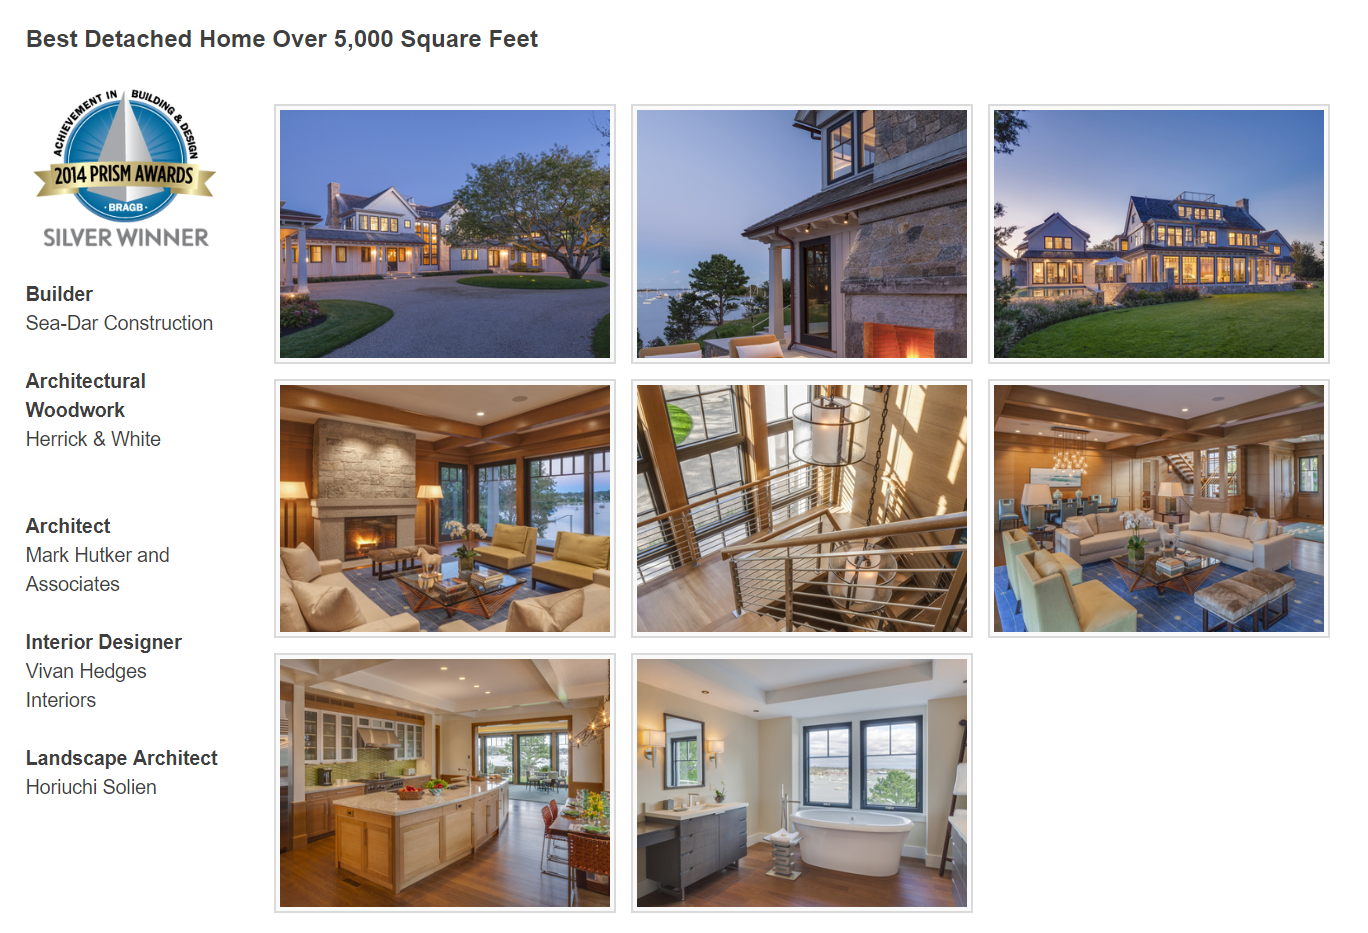 2014 Silver PRISM Award - Best Detached Home Over 5,000 Square Feet